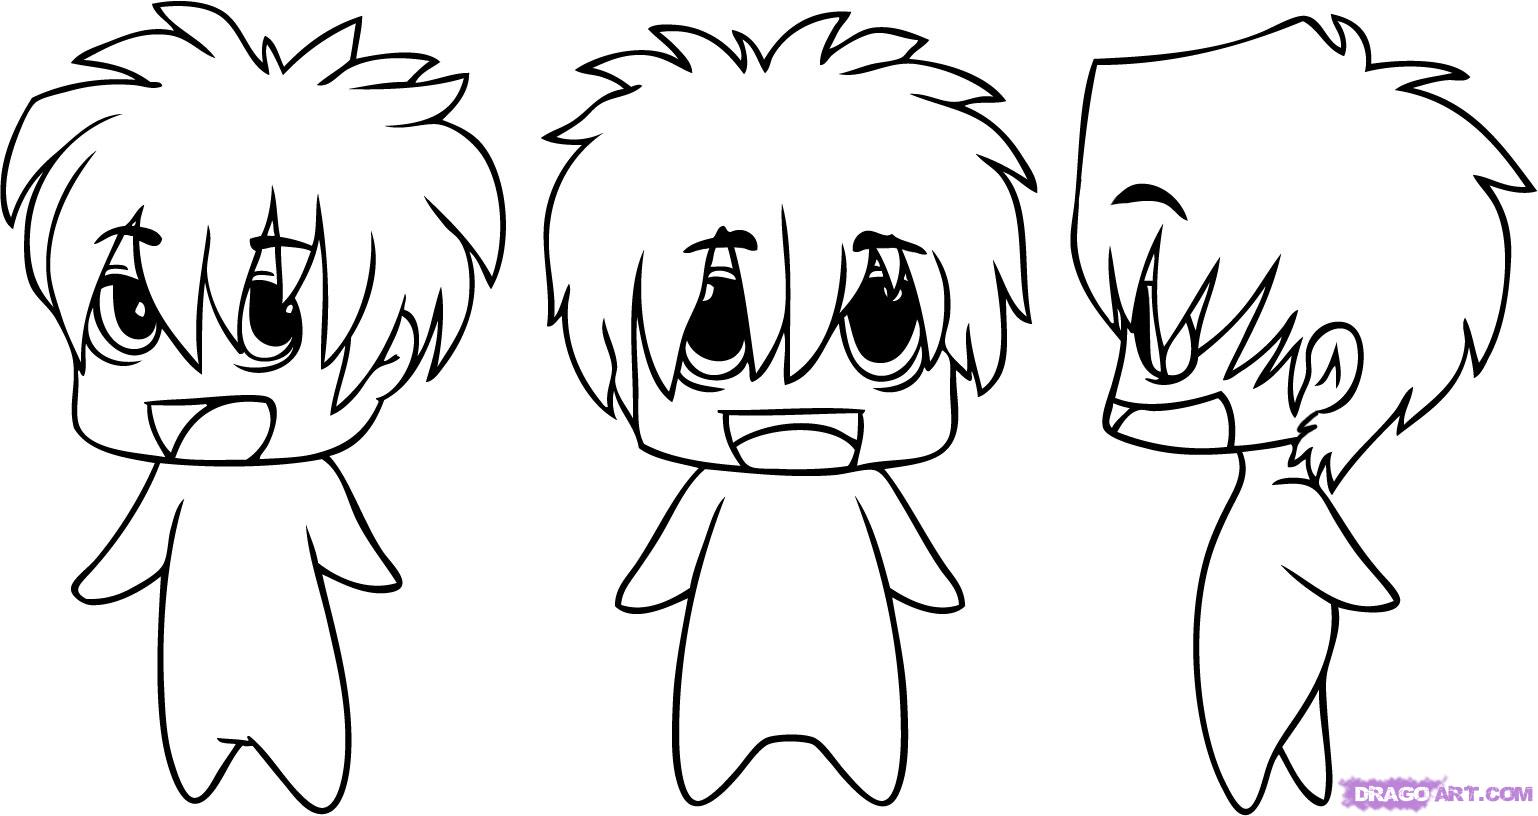 1538x816 Drawn People Chibi Anime